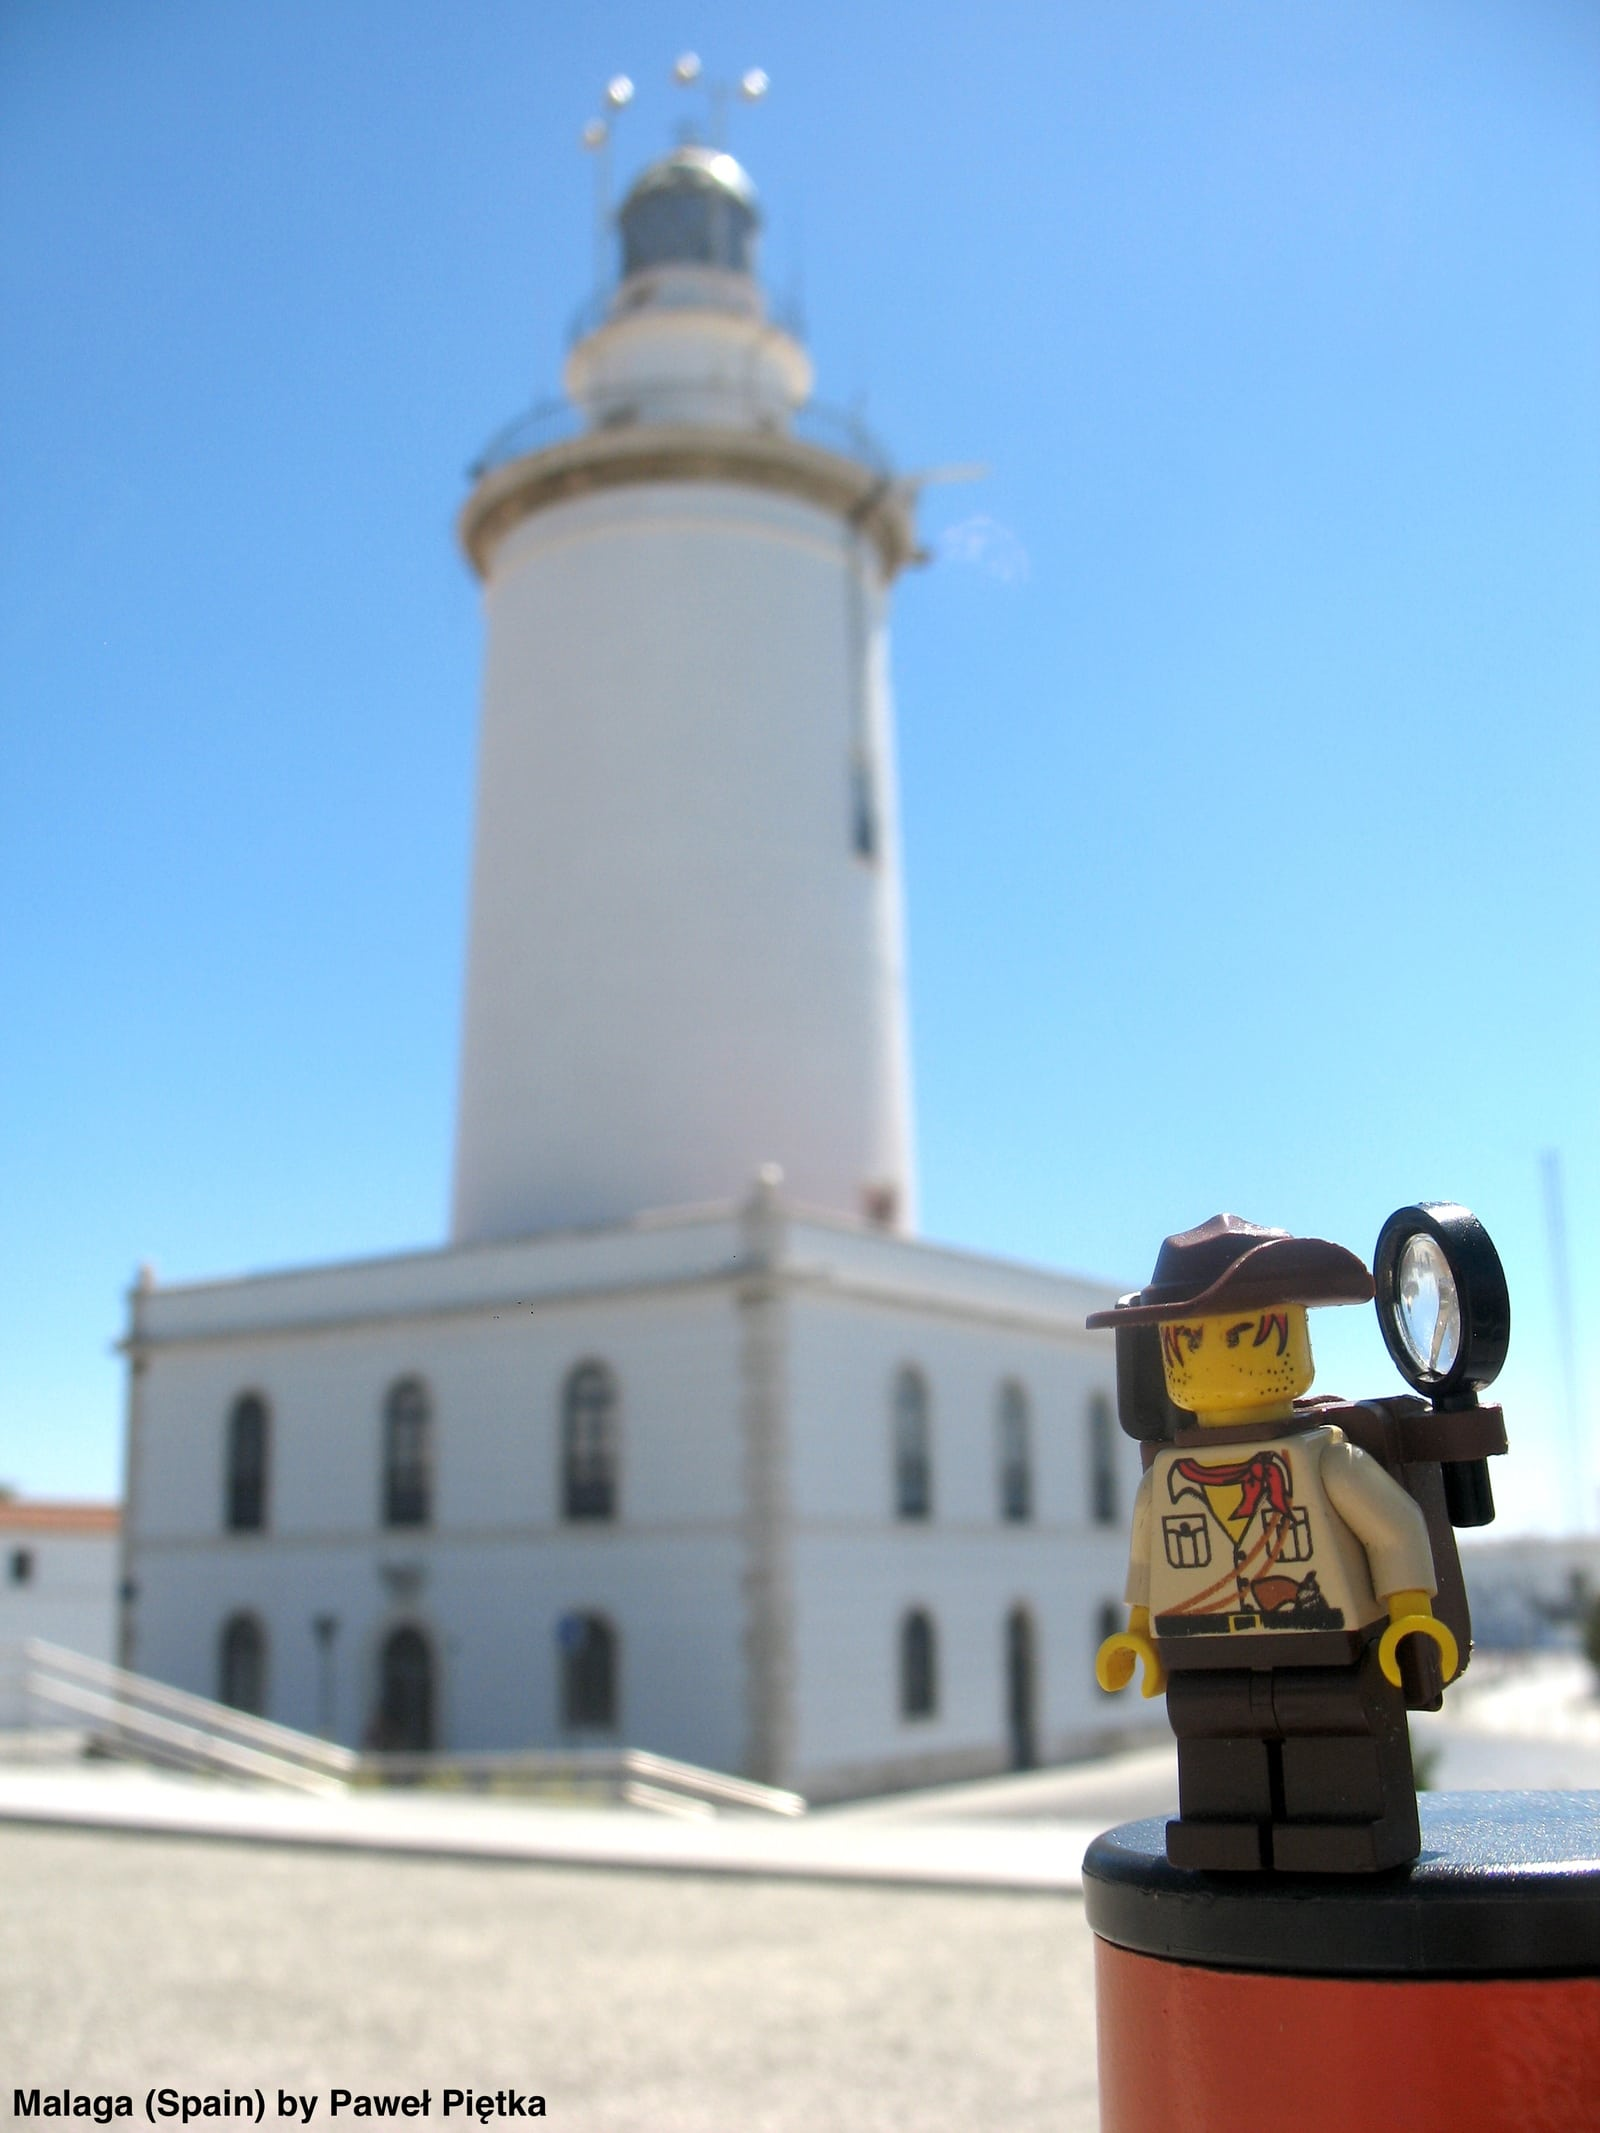 Malaga (Spain) - La Farola lighthouse